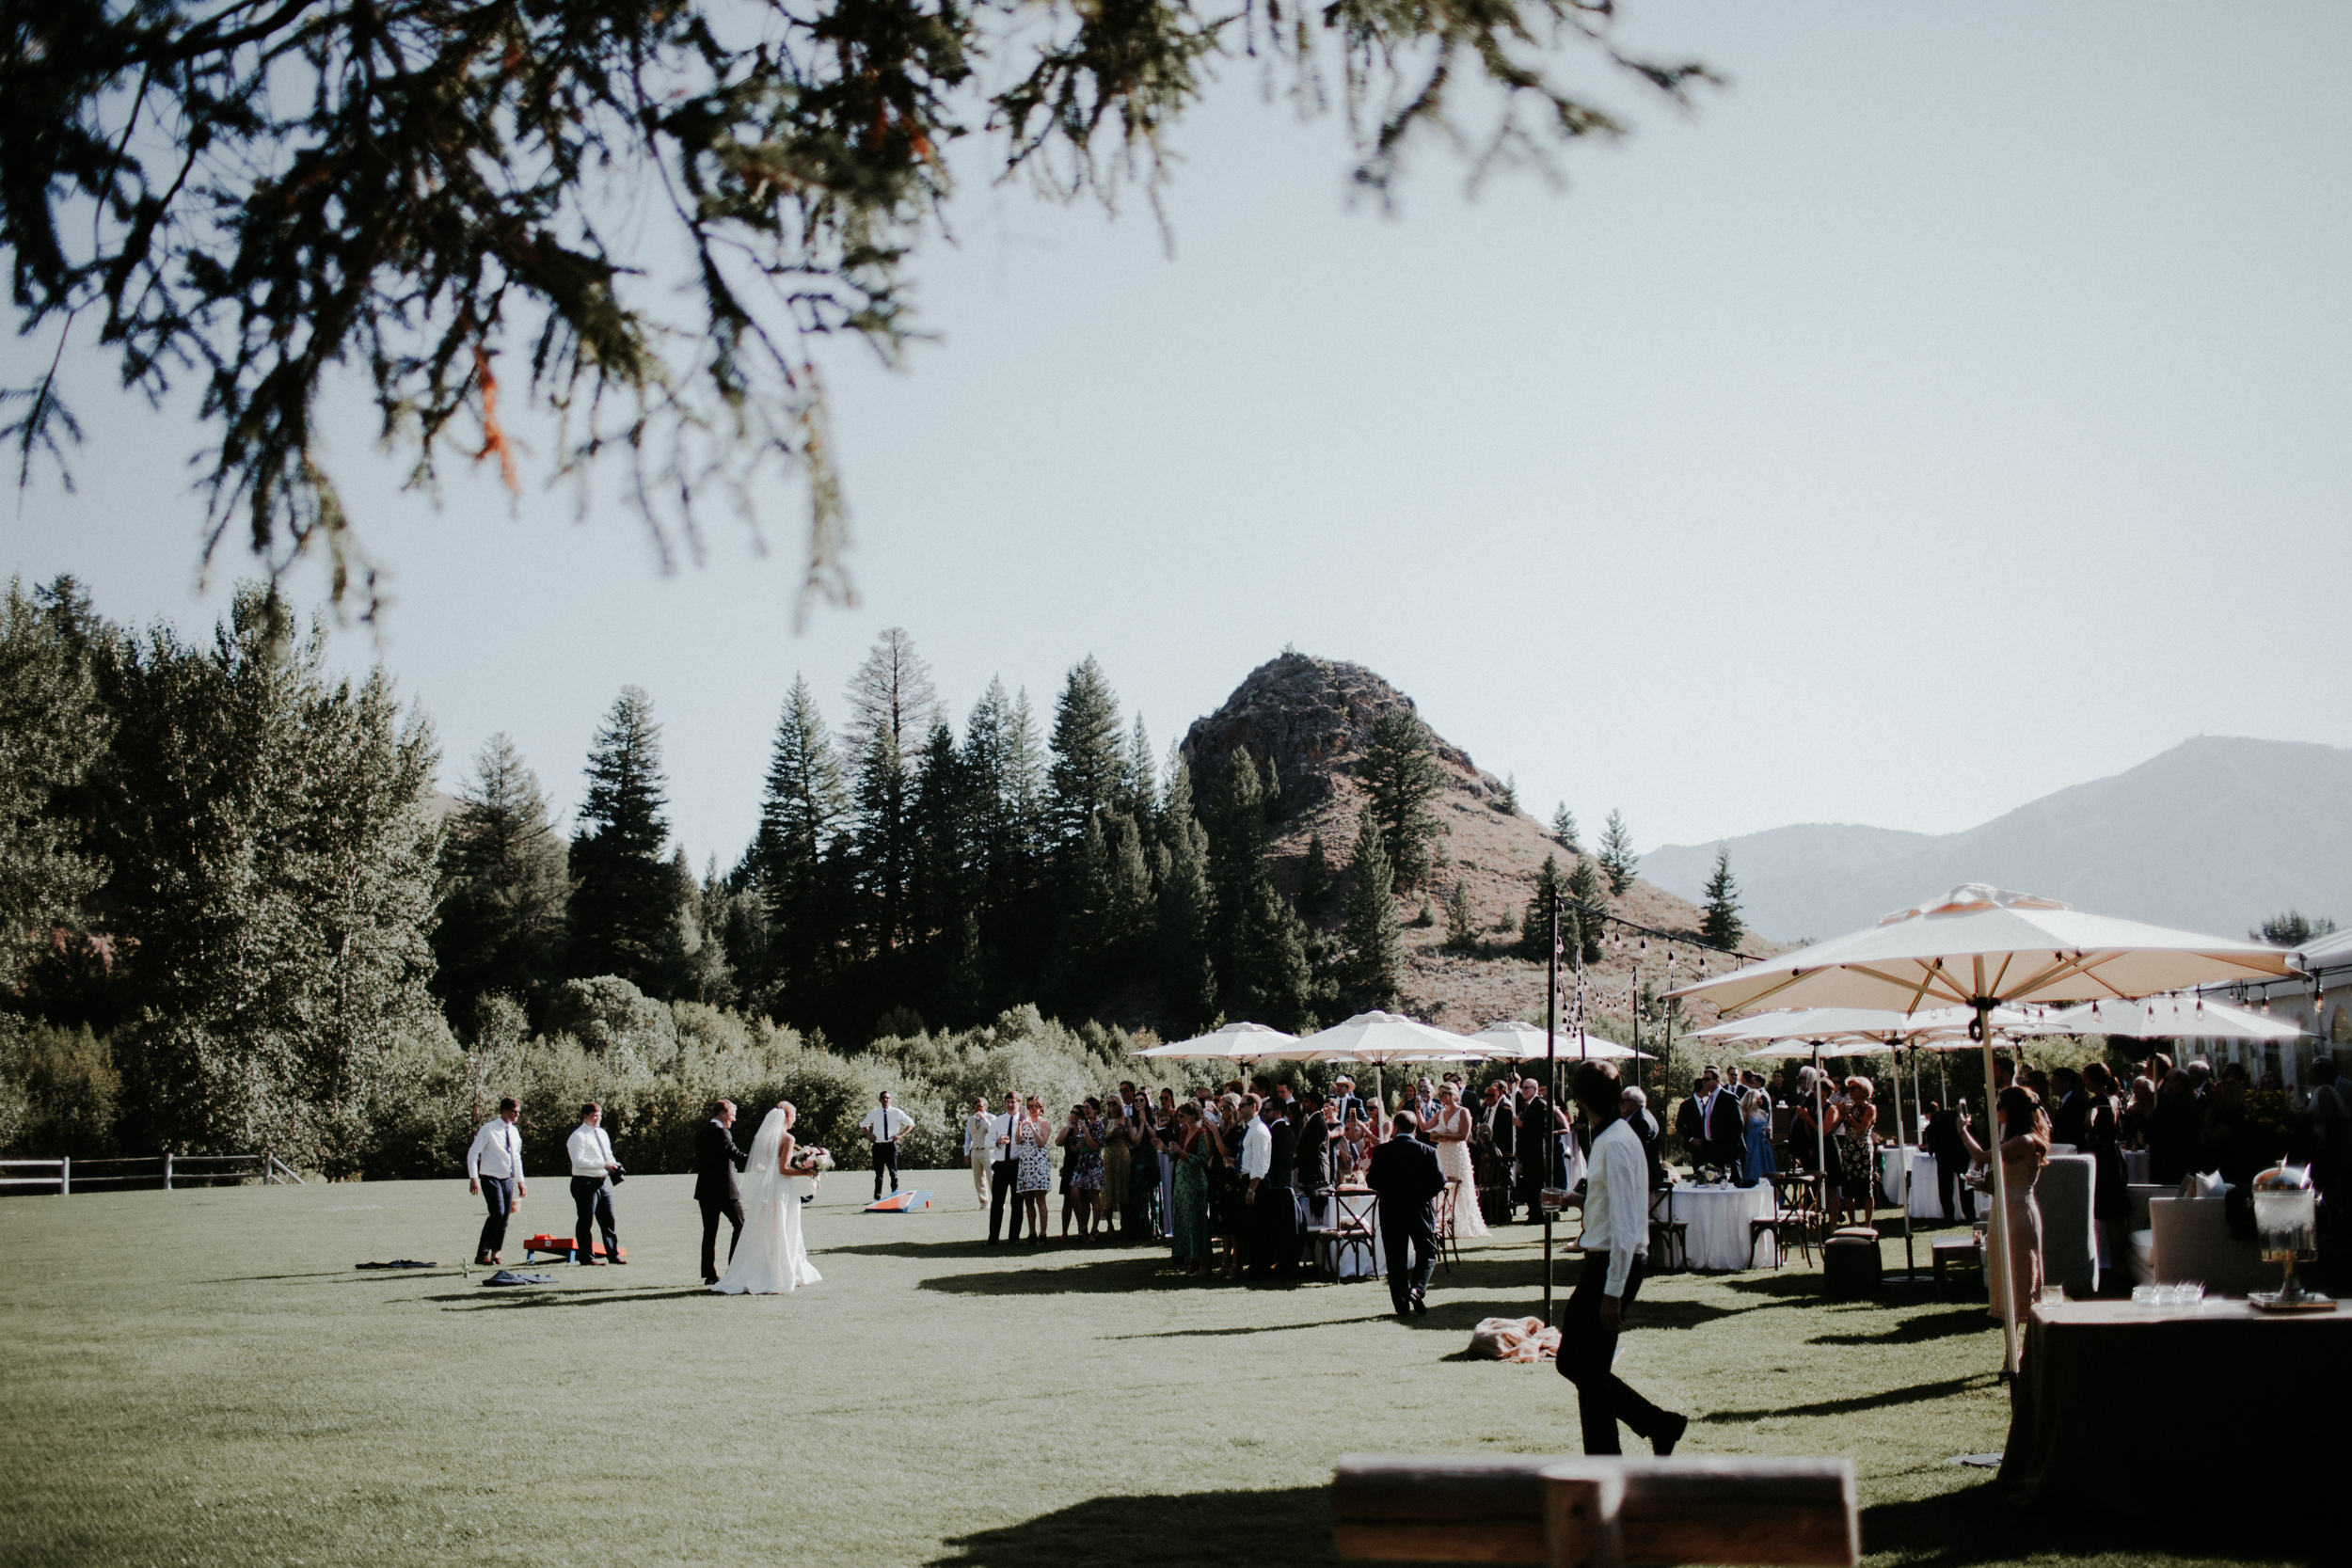 mad_Jon_Sun_valley_idaho_wedding-67.jpg